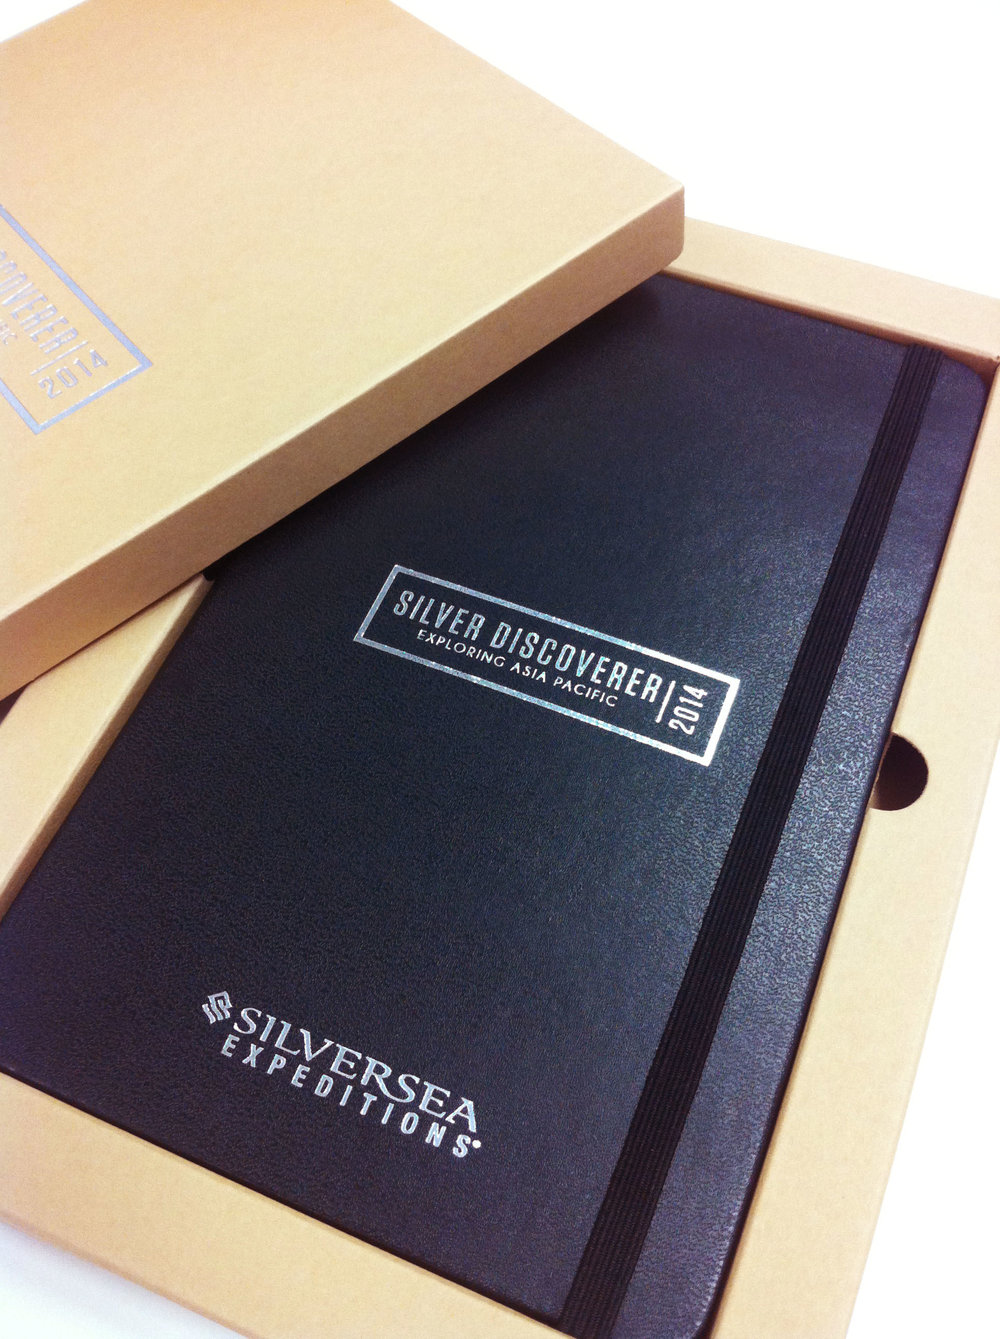 Packaging We can provide you with a Moleskine inspired gift box which your logo, tagline or design can be printed on ... Read more